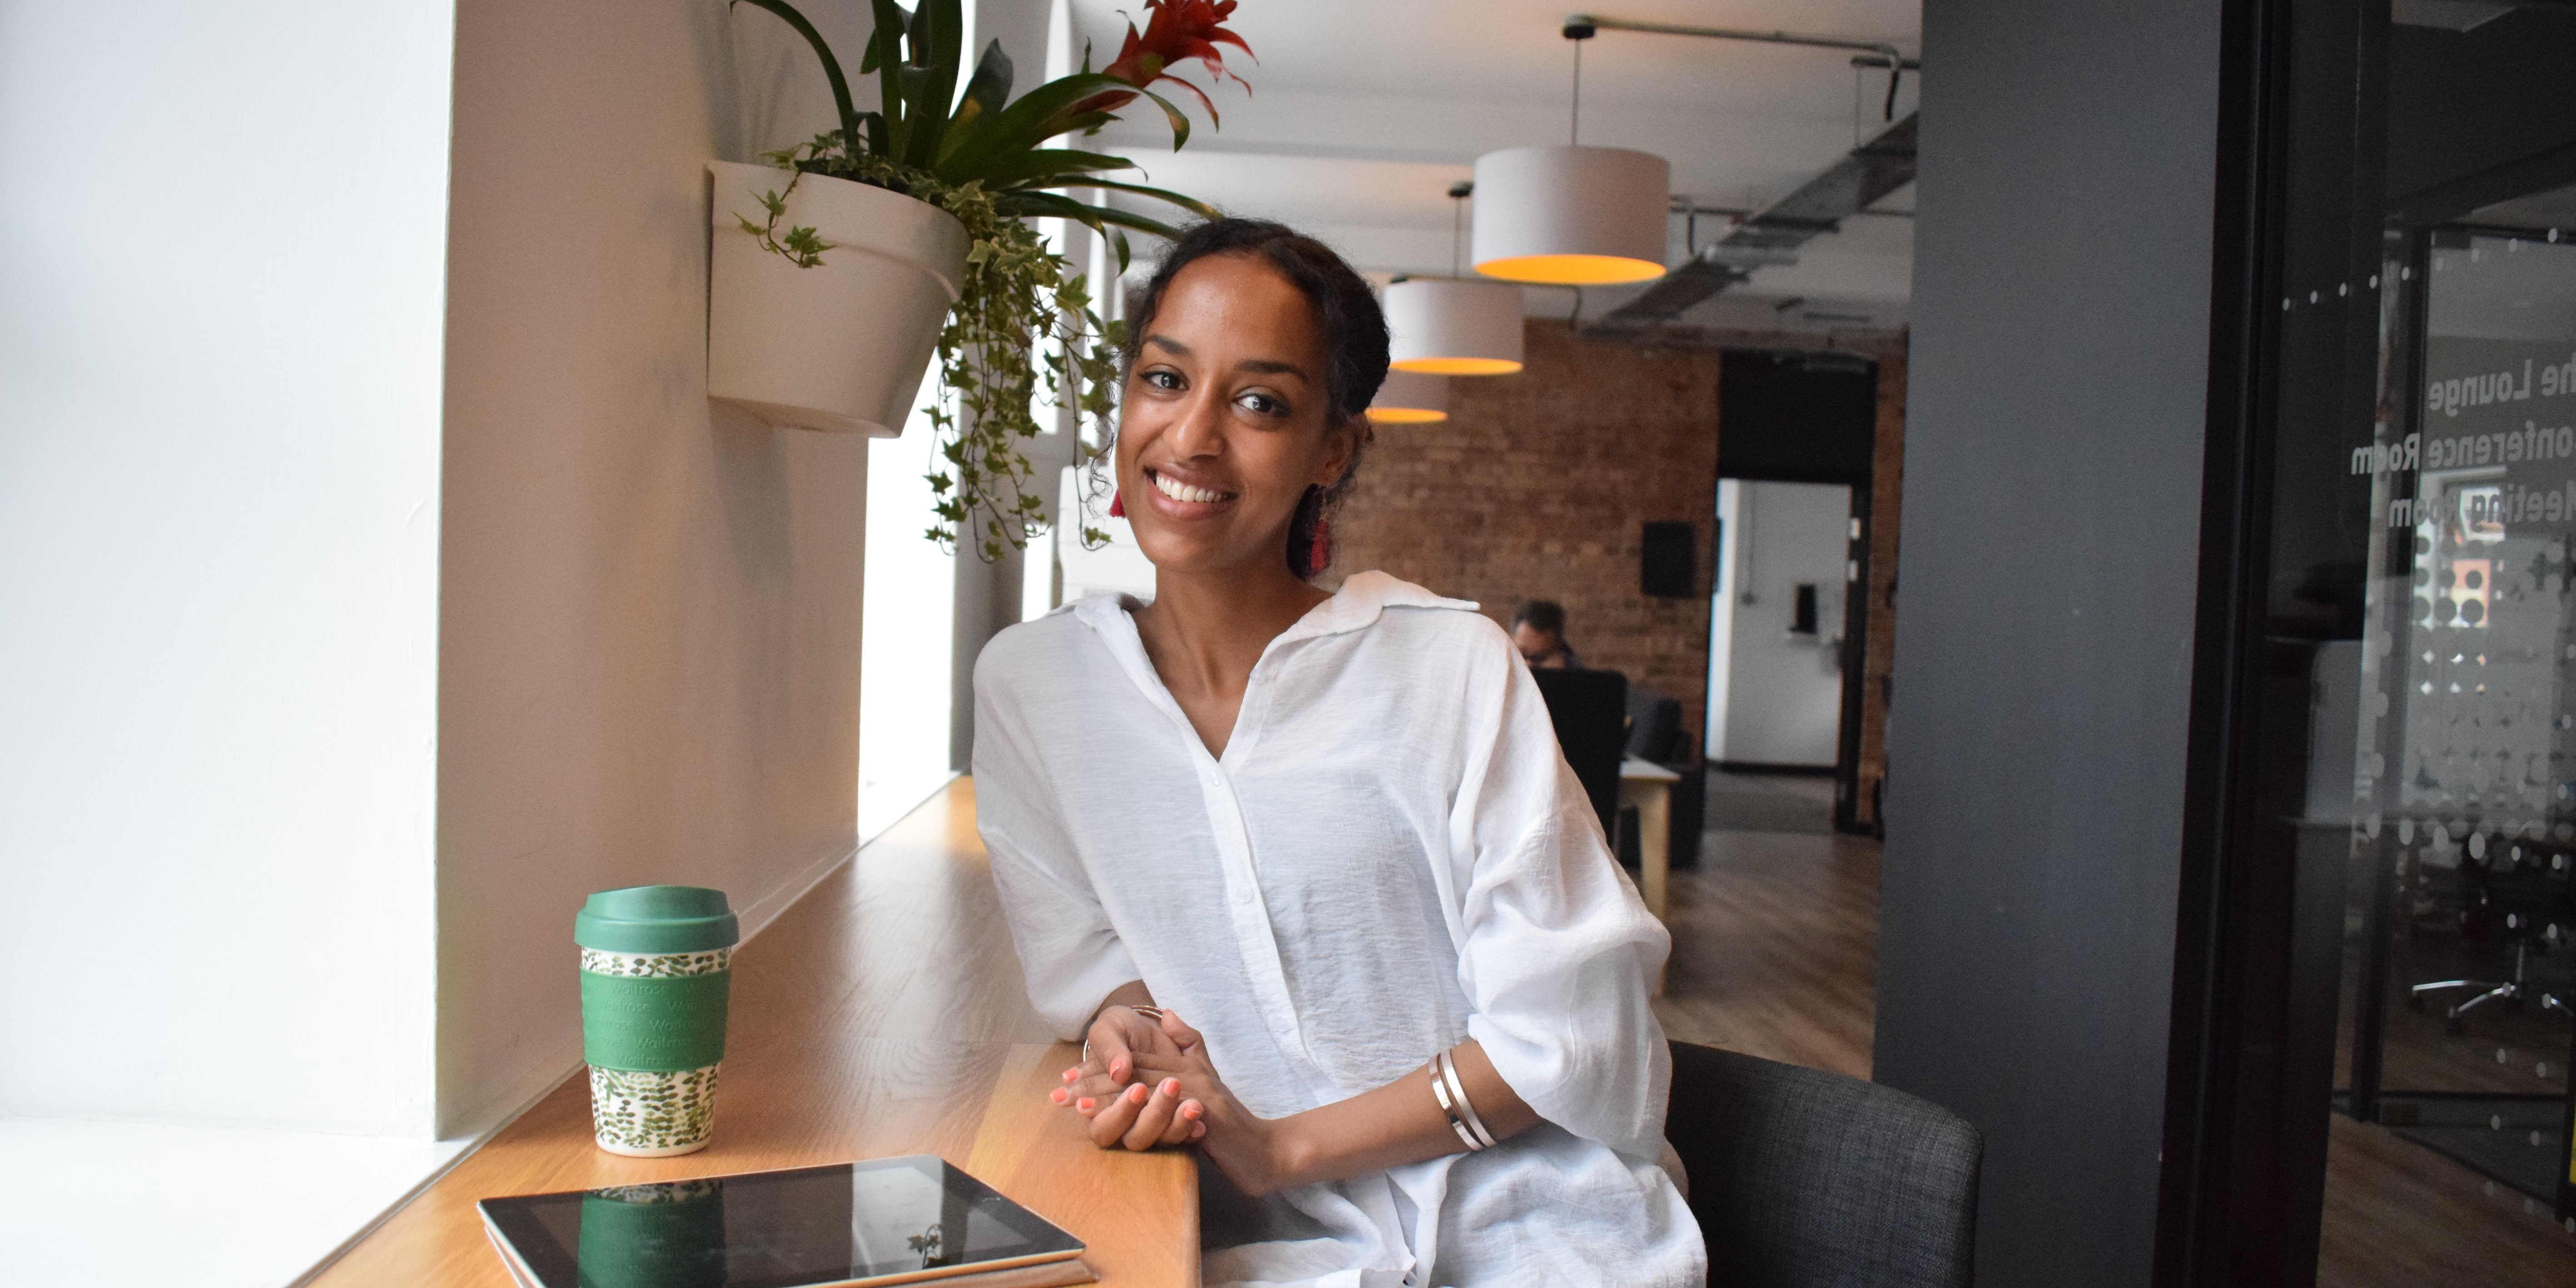 Meet Adiam, one of our Cooper Project startups